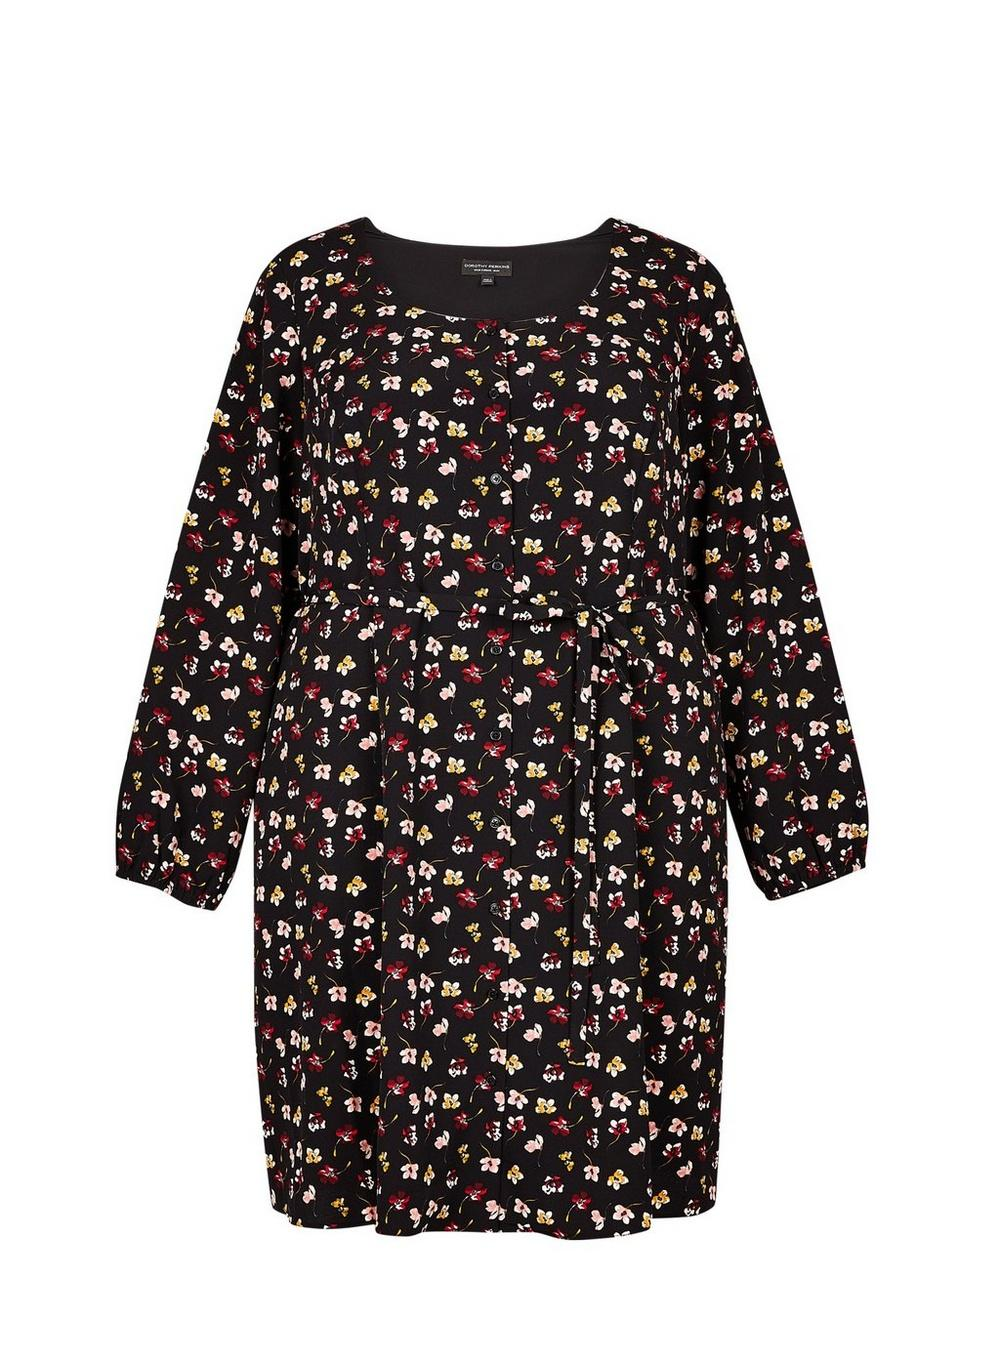 ea67e44f7e1 Dorothy Perkins. Women s Black Dp Curve Multi Colour Floral Print Button  Detail Tea Dress